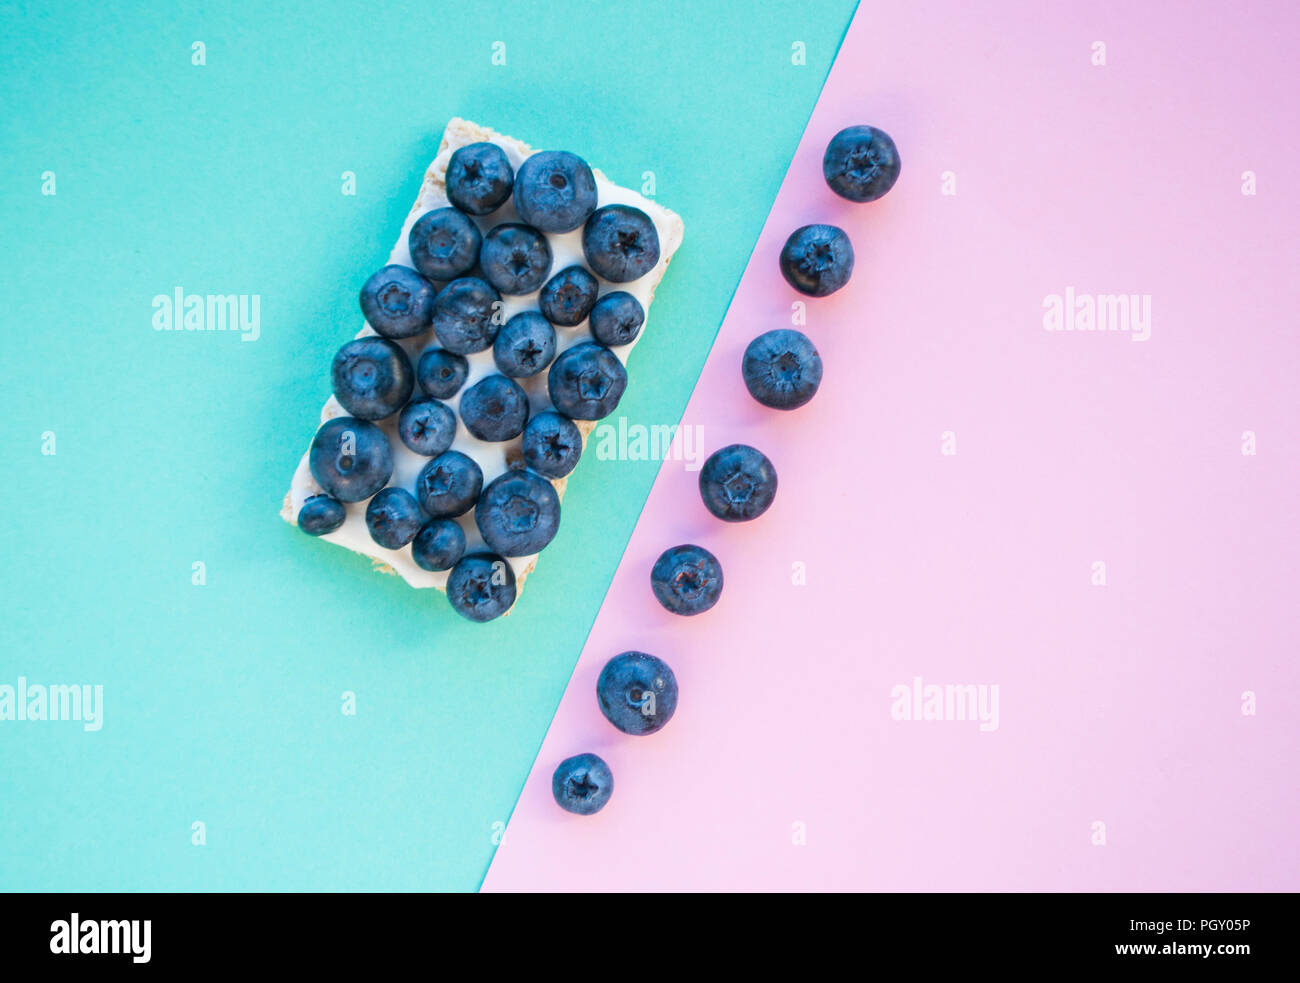 Delicious freshly picked bluberry and healthy sandwich on blue and pink background with copyspace. Healthy food concept. - Stock Image